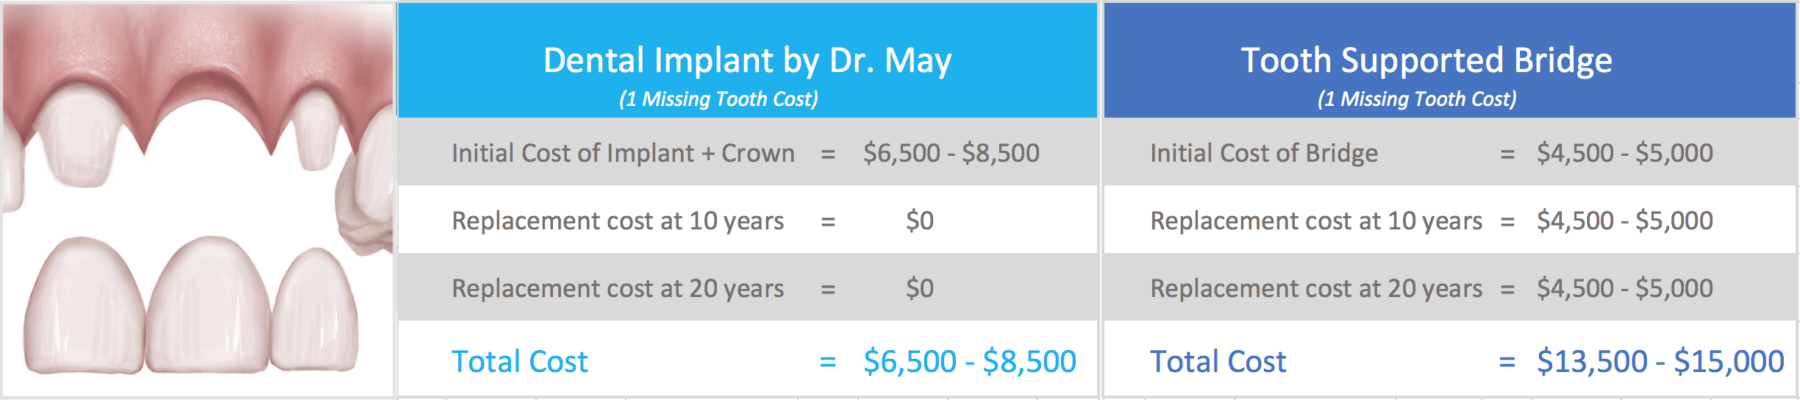 Zirconia Dental Implants Dr Yuriy May Metal Free 3d Tooth Diagram Additionally Parts Of A Bridge For Teeth Implant Costs Are Not Only Healthier But Cost Less In The Long Run Than Bridges